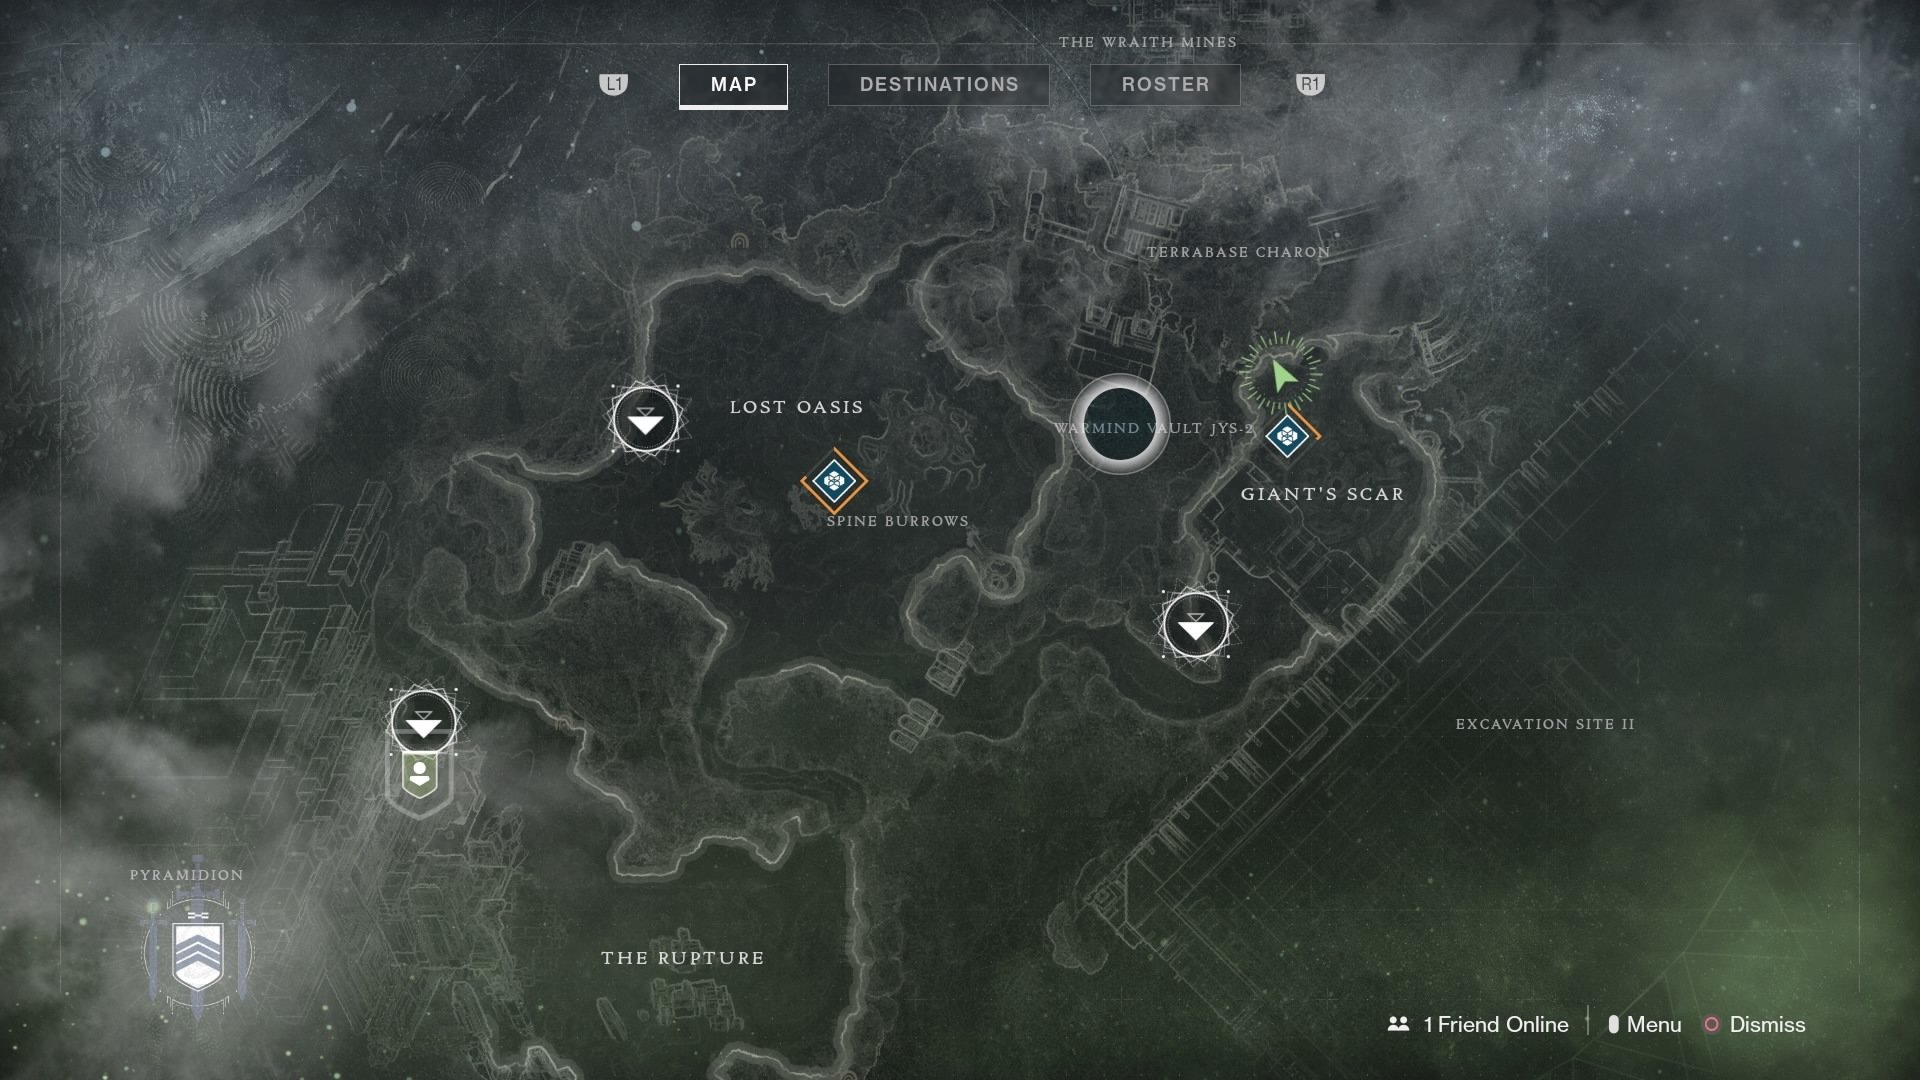 Xur location in Destiny 2 during the week of December 14